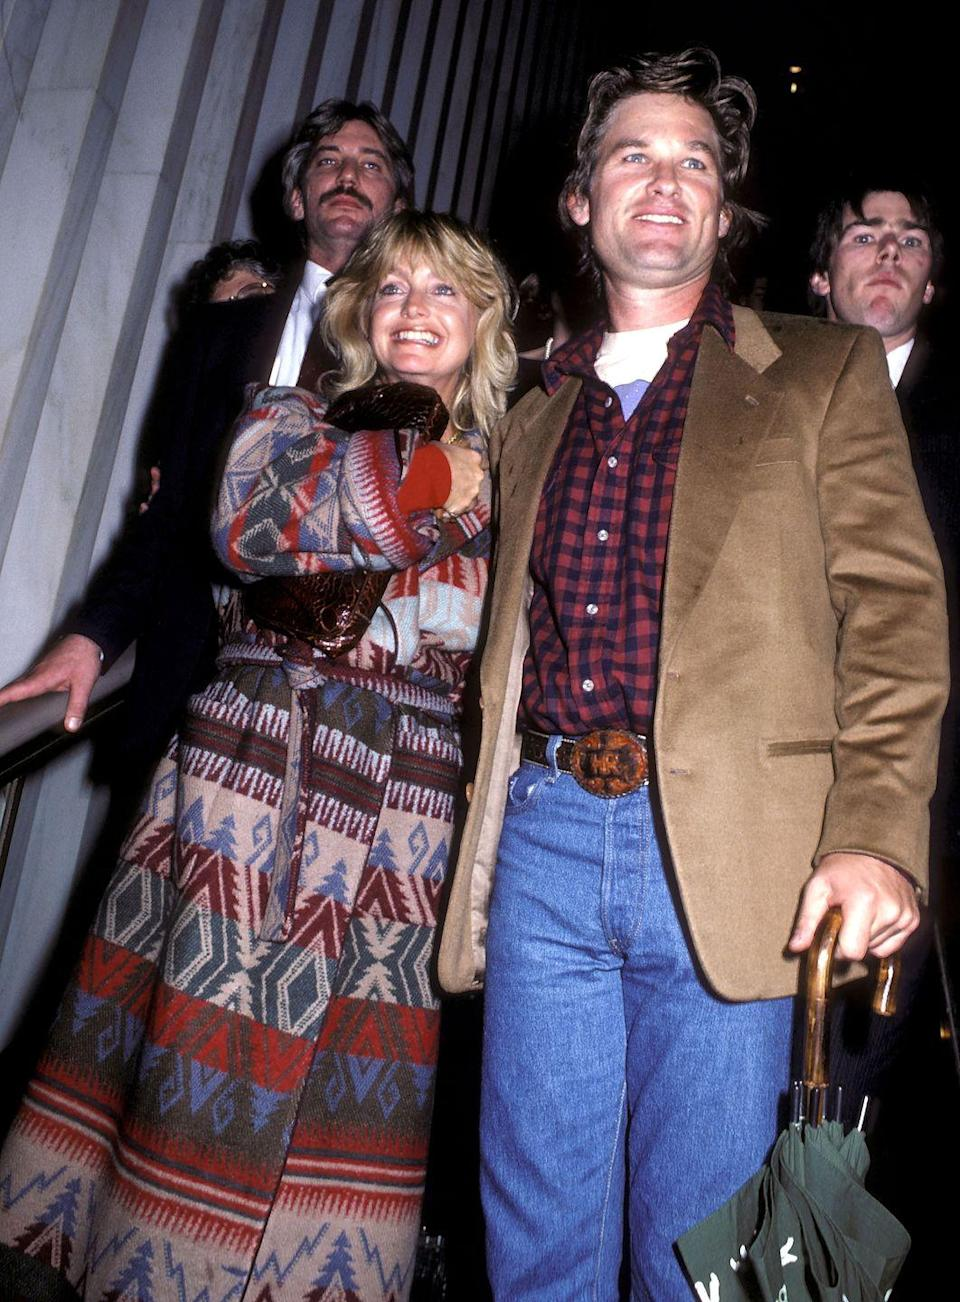 <p>Goldie Hawn and Kurt Russell brought folksy fall vibes to the grand opening of a new FAO Schwarz location. The plaid, denim, tribal-printed long coat, and beige suit jacket could all totally be found in a hipster, vintage shop this autumn.</p>